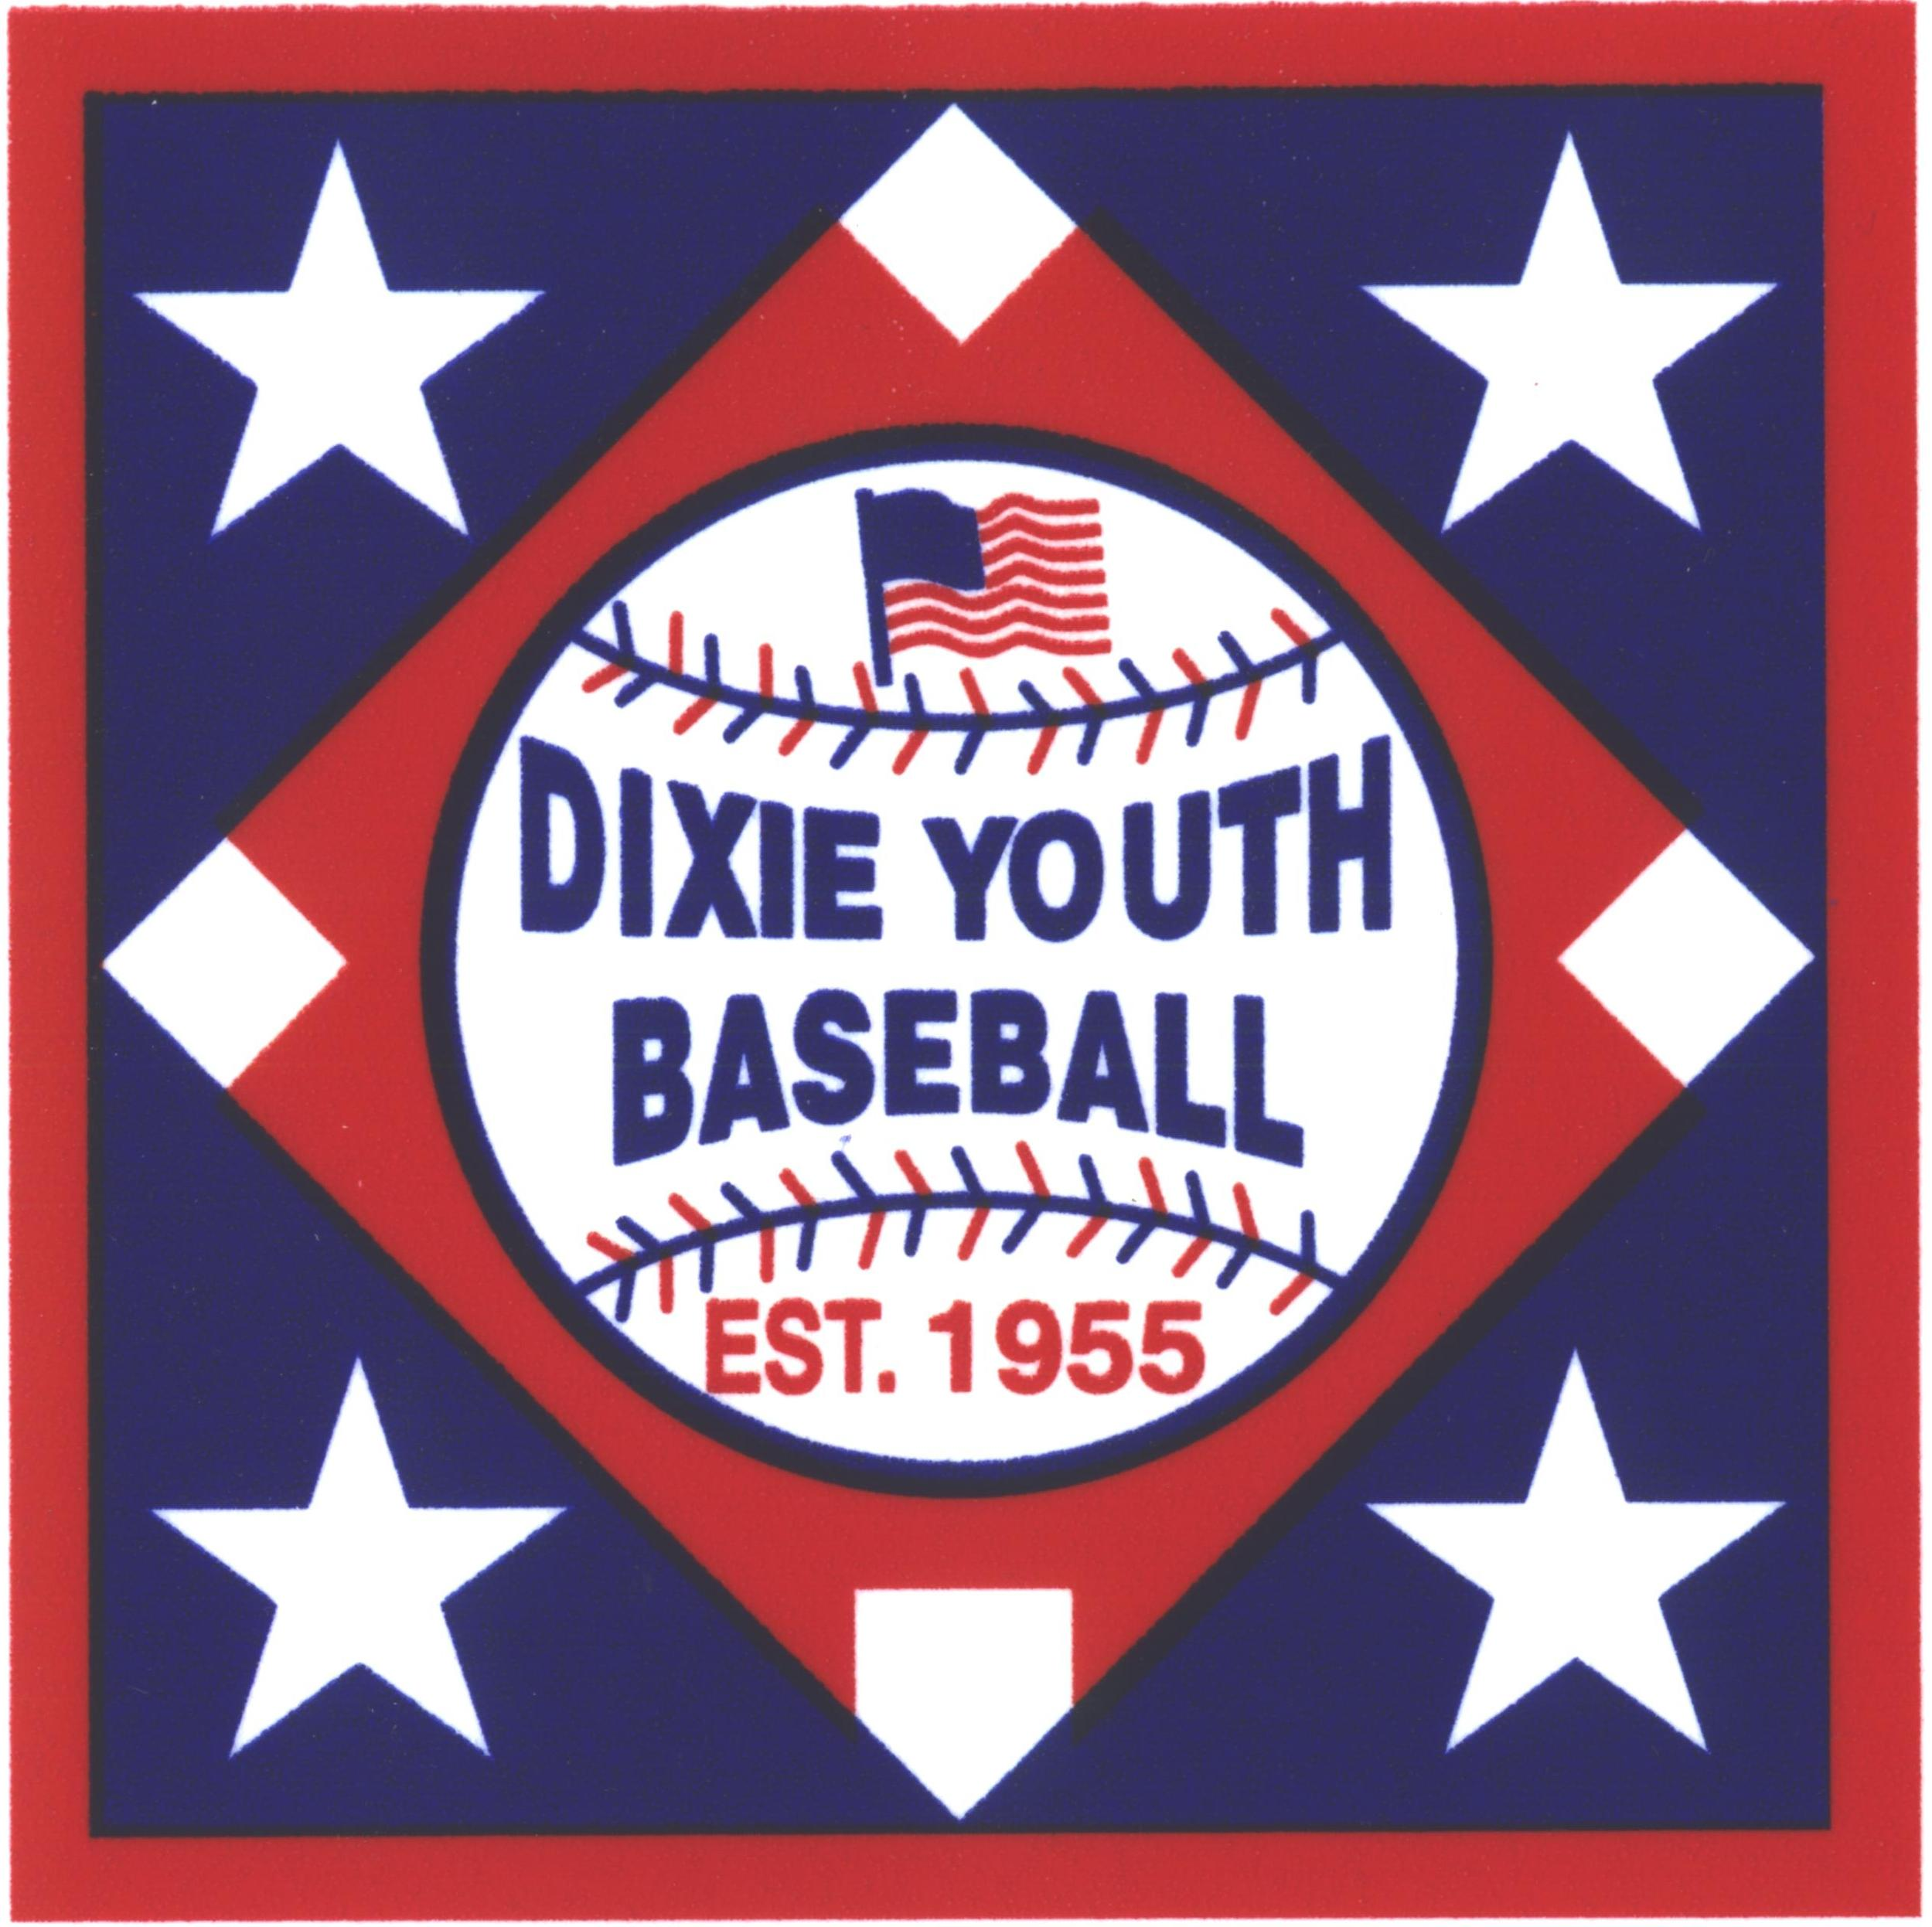 Florida Dixie Youth Baseball